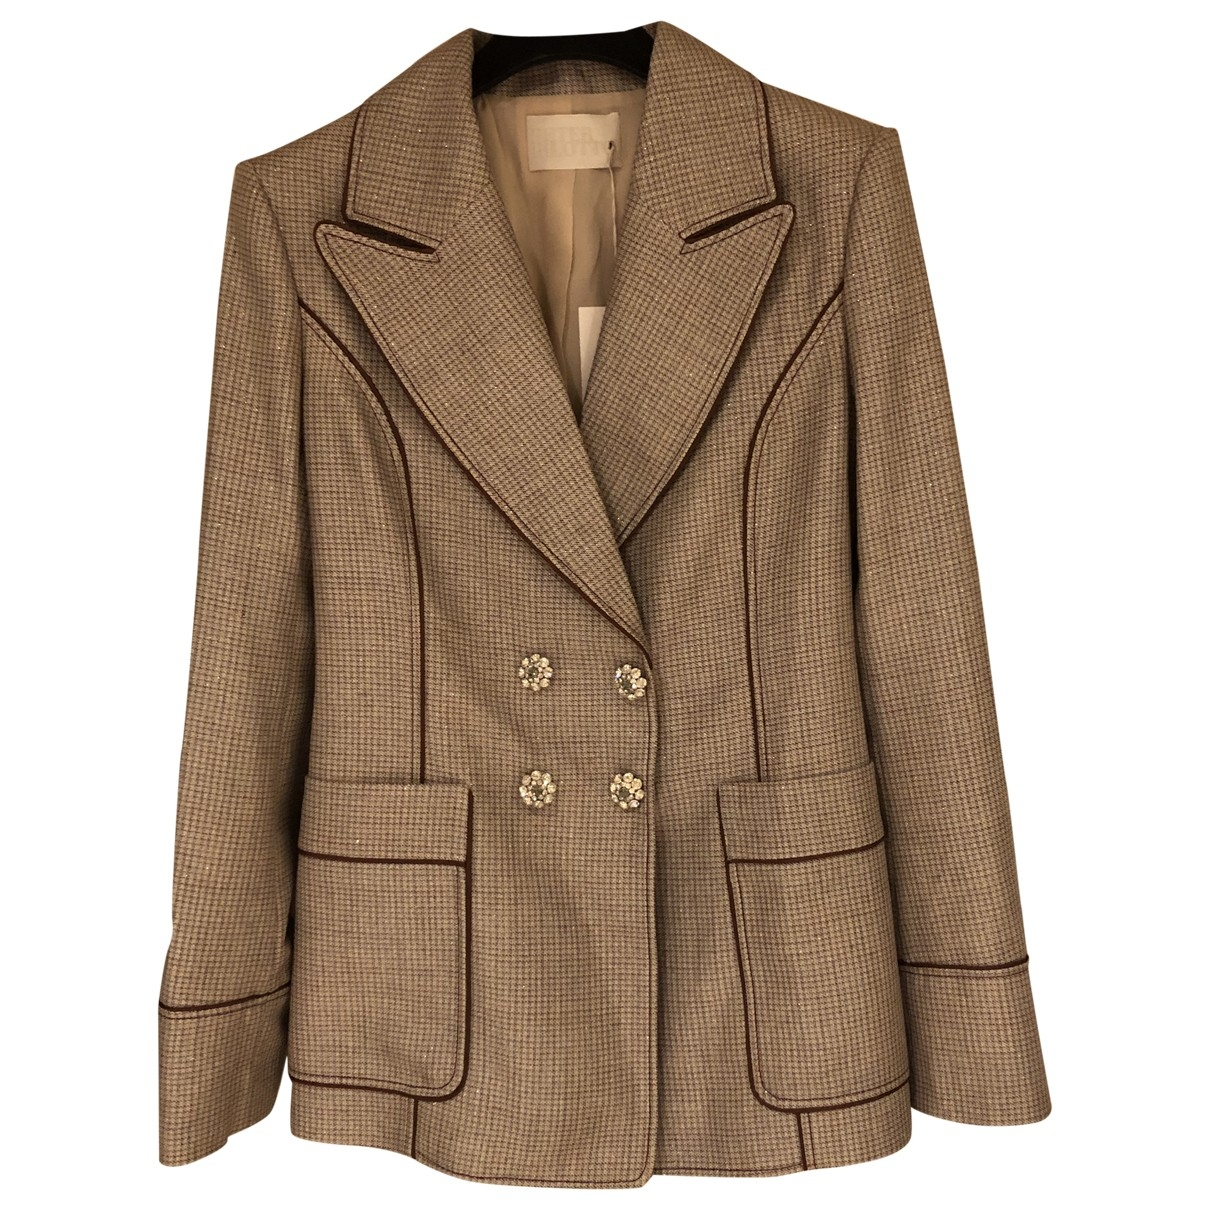 Peter Pilotto \N Beige Wool jacket for Women 10 UK